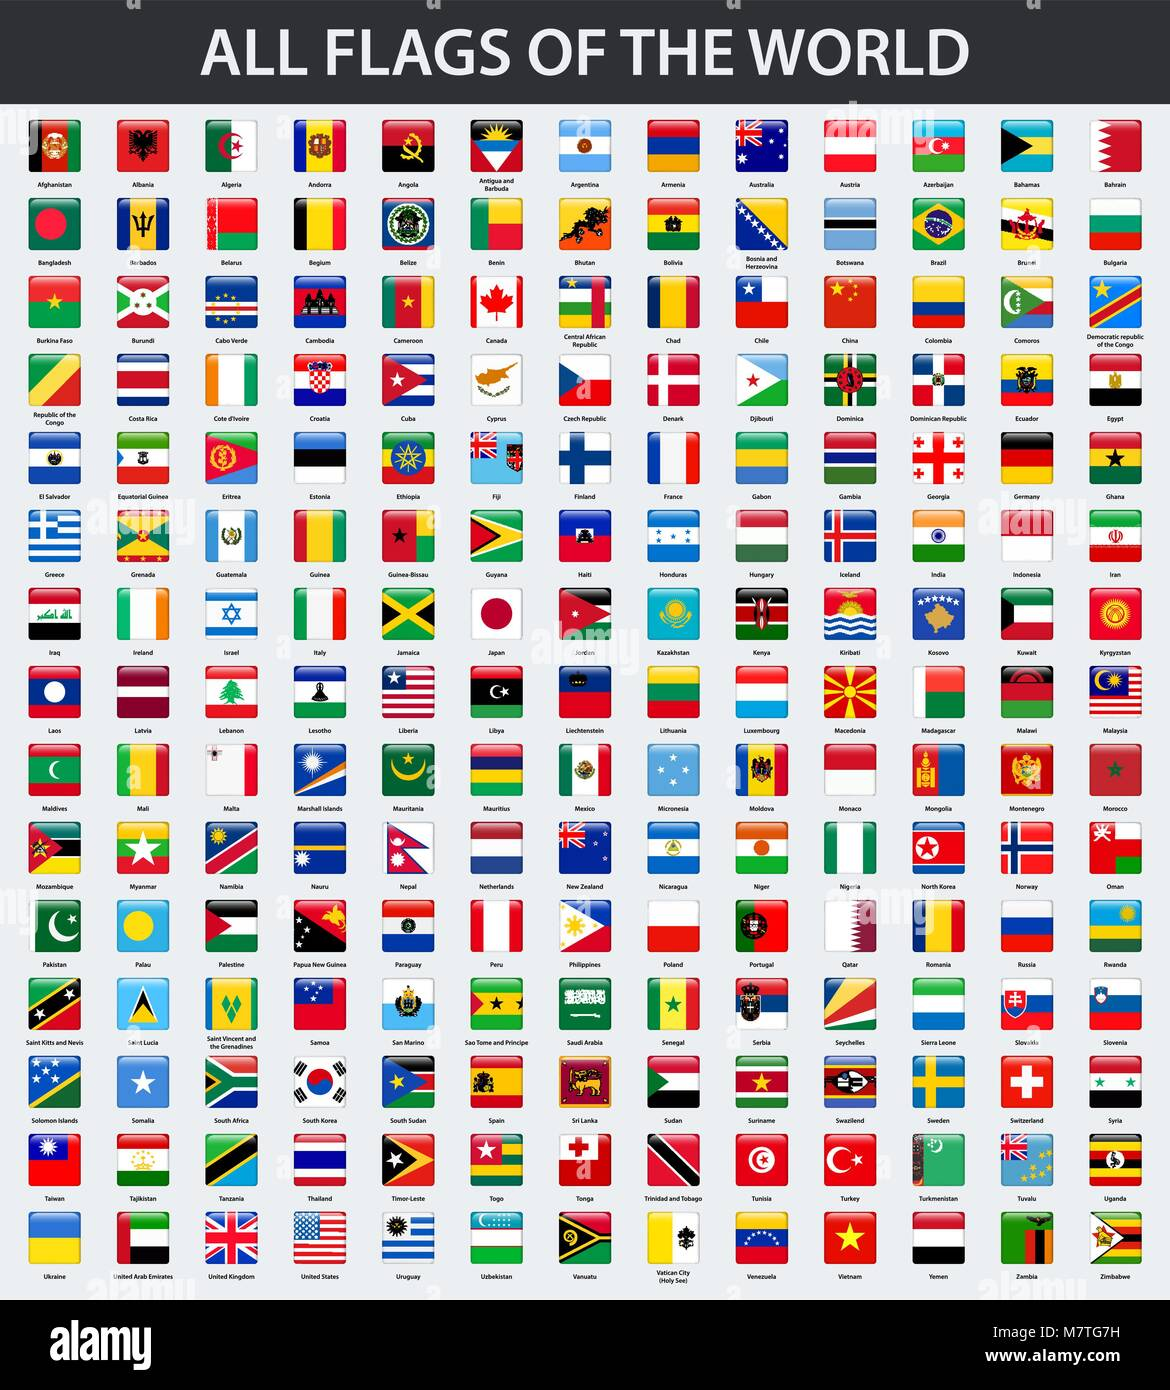 All Flags Of The World In Alphabetical Order Square